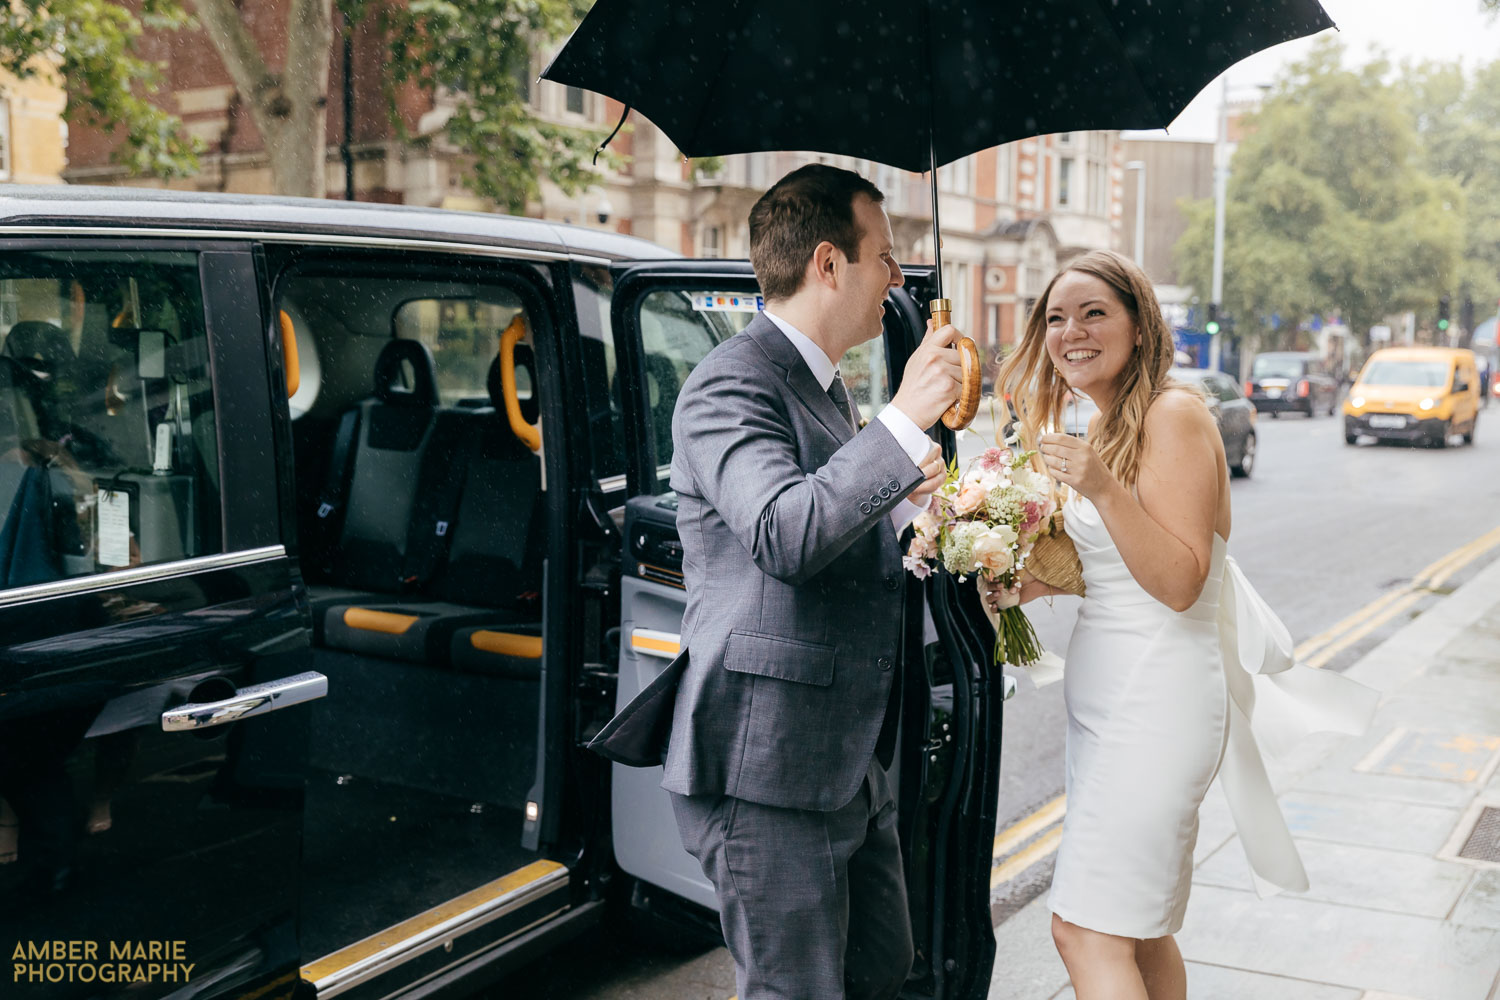 Candid wedding photography from chelsea town hall wedding